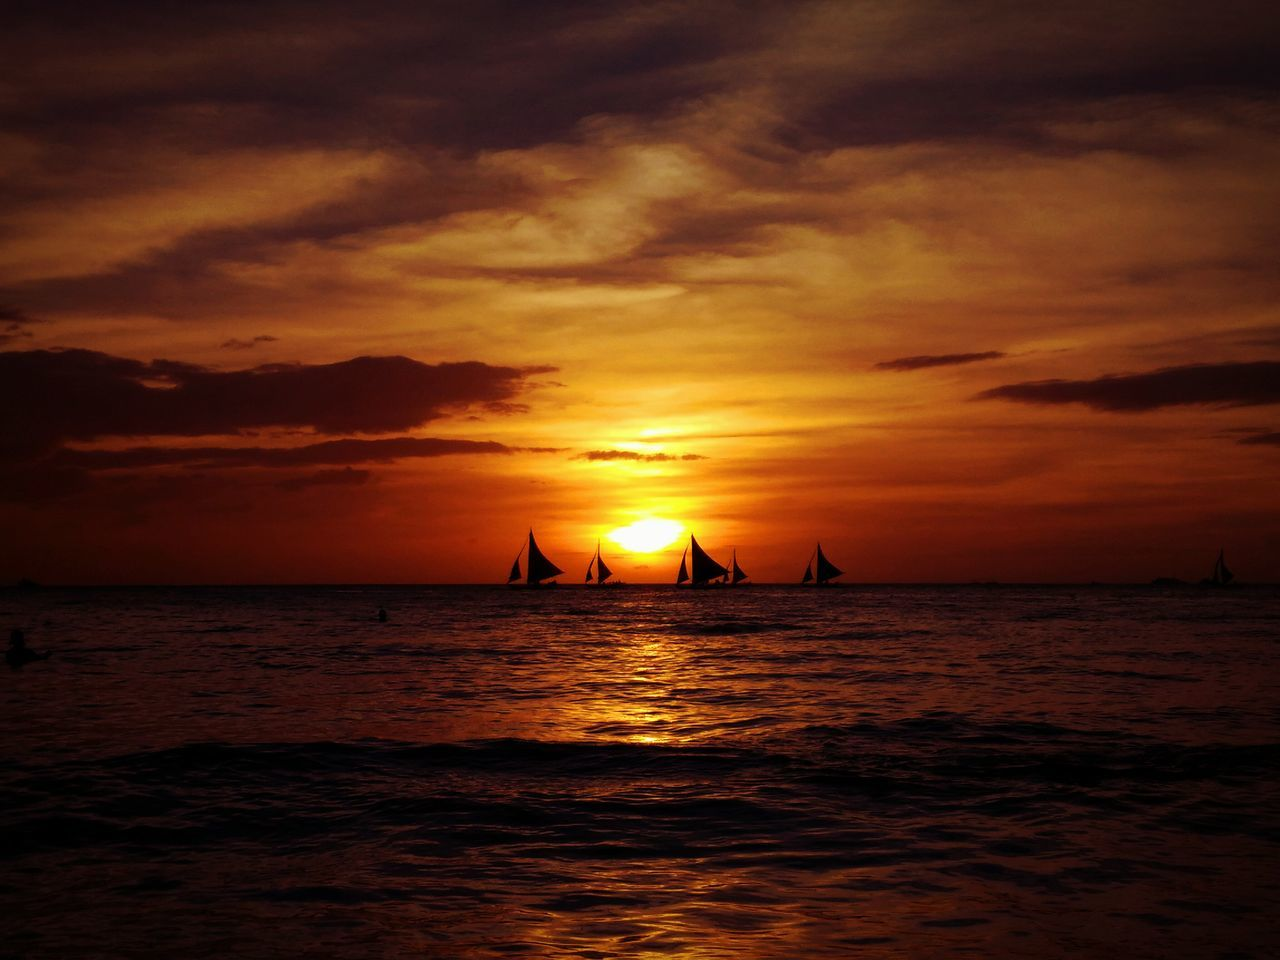 Golden Sunset @ Boracay Island, Philippines First Eyeem Photo Beach Nature Sunset Silhouettes Stunning Scenery Philippines Boracay Aklan